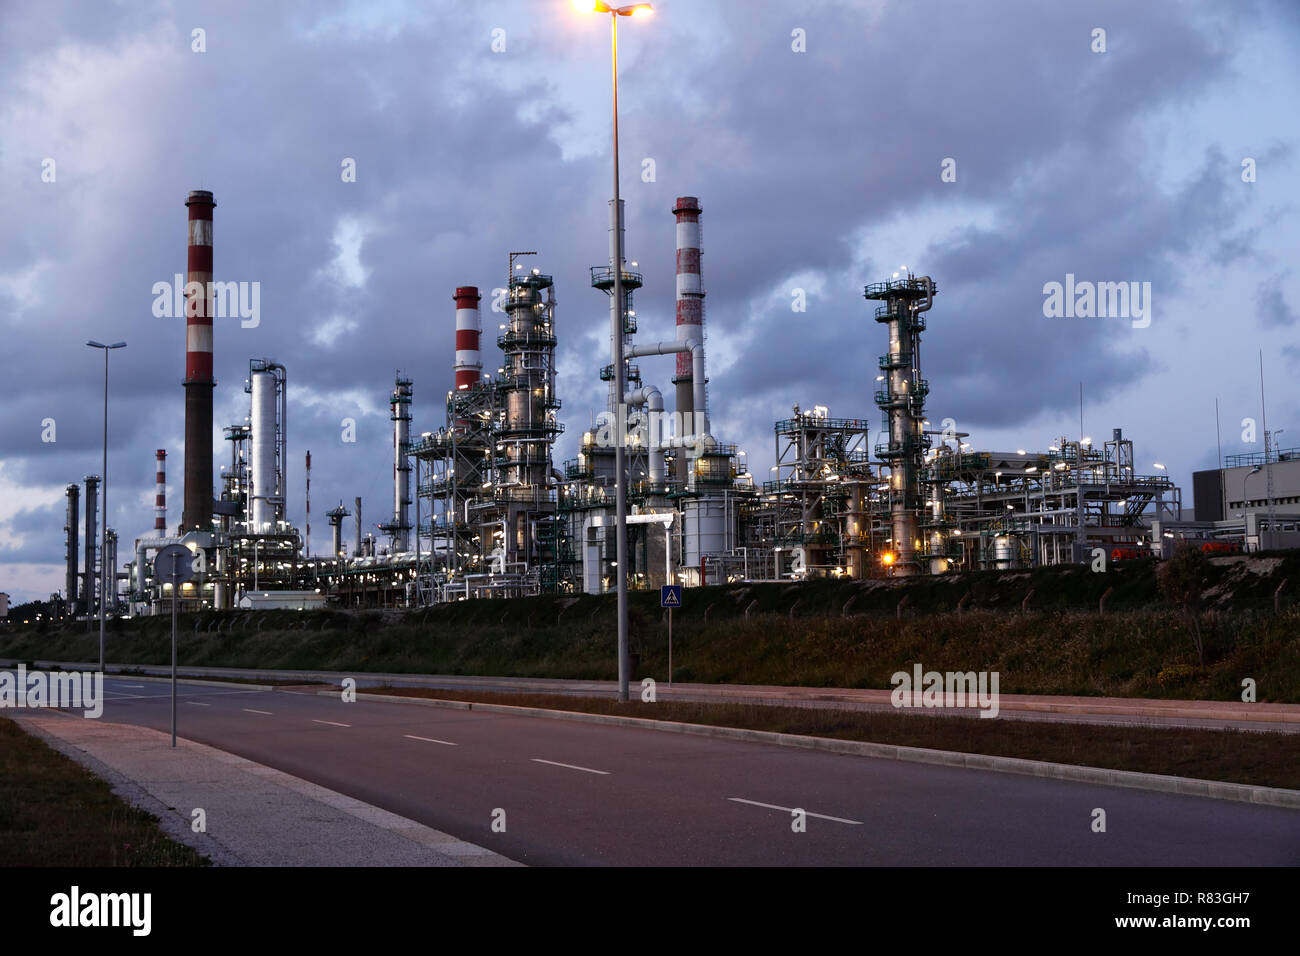 Oil refinery and powerplant near a road at dusk - Stock Image